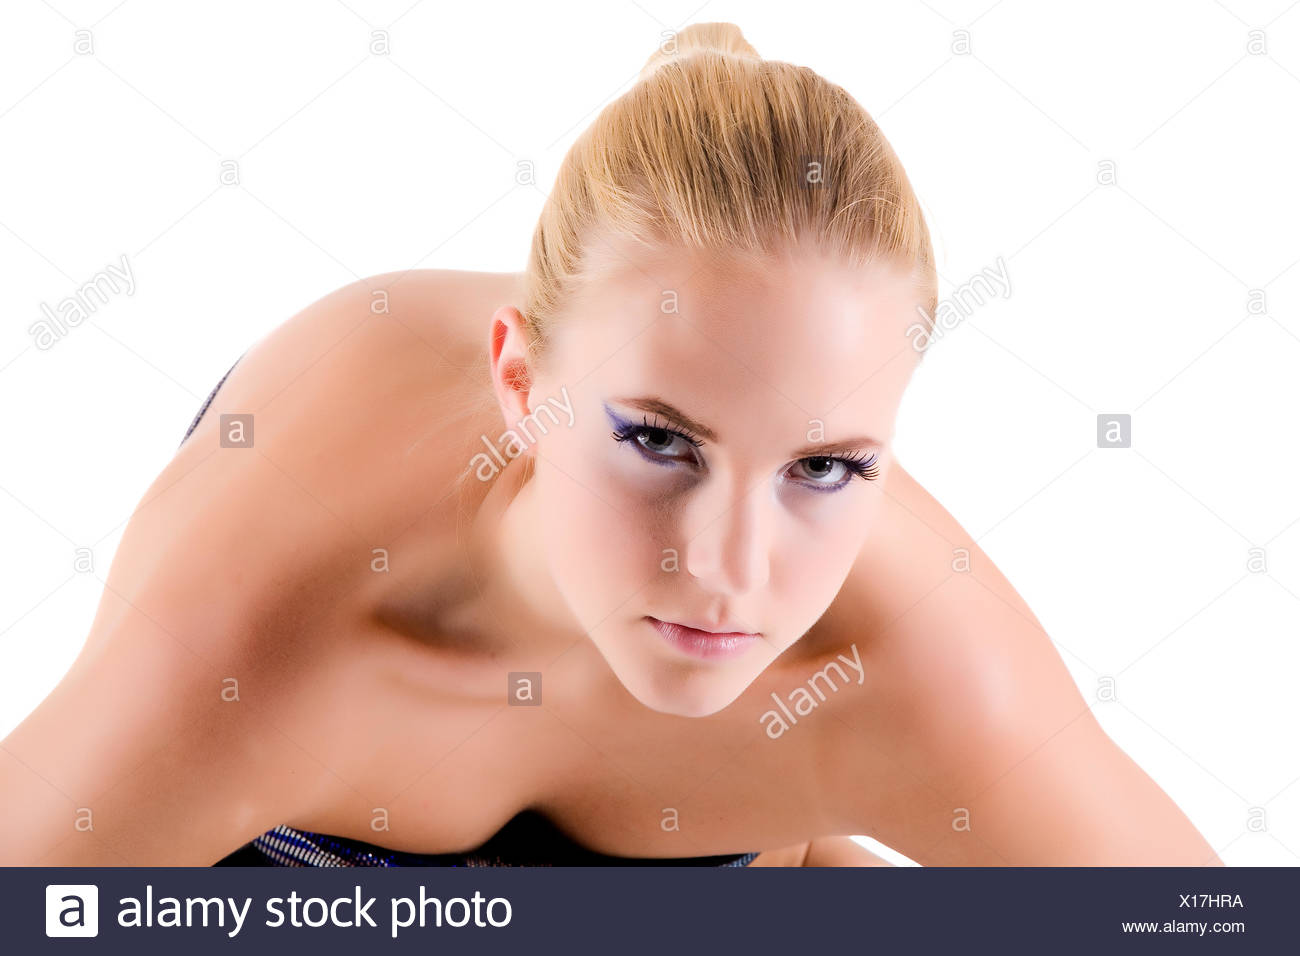 I am looking closely at you - Stock Image